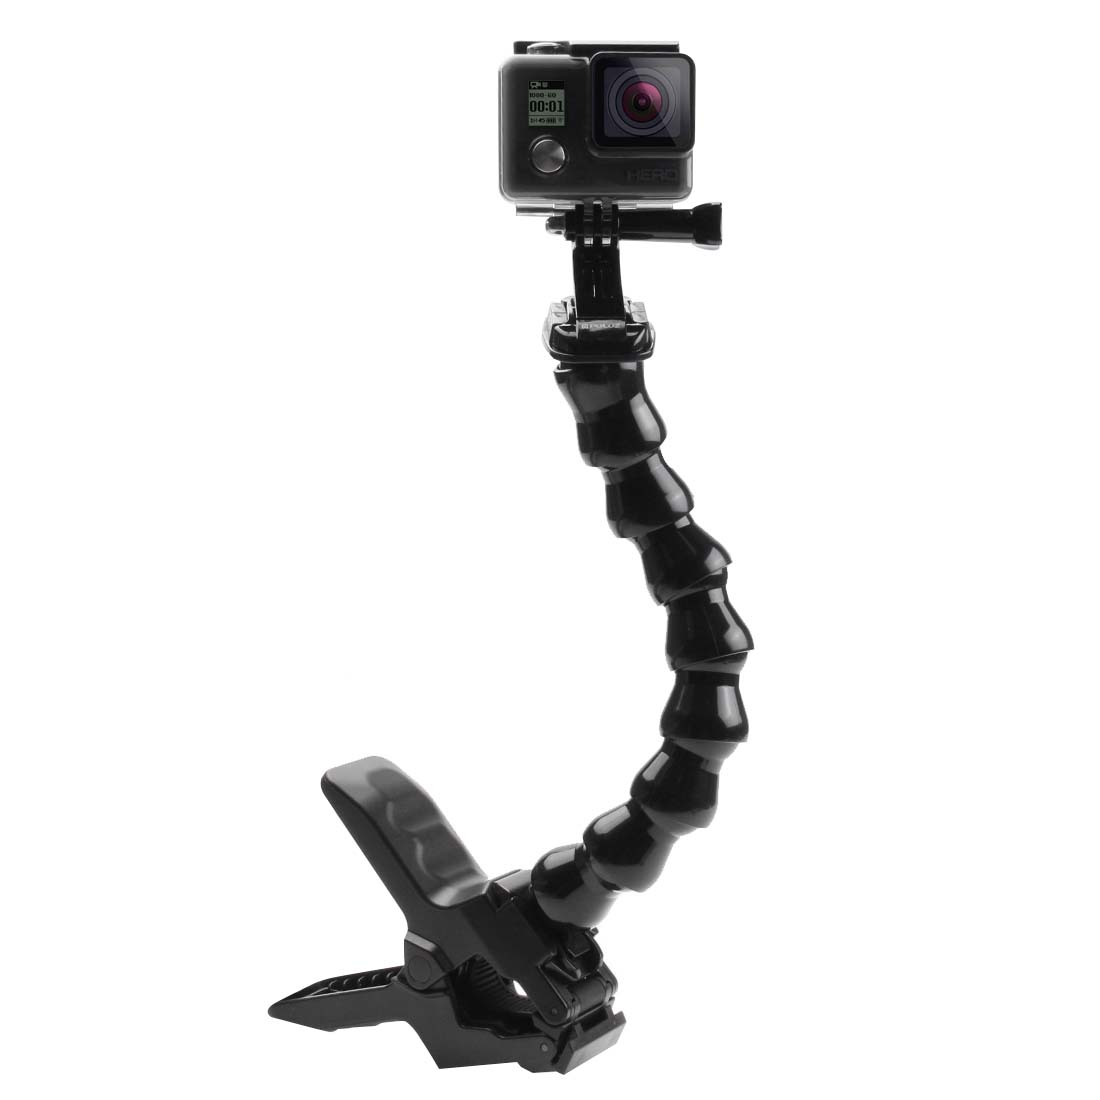 PULUZ PU179 Jaws Flex Bent Neck Clamp Mount for Gopro S